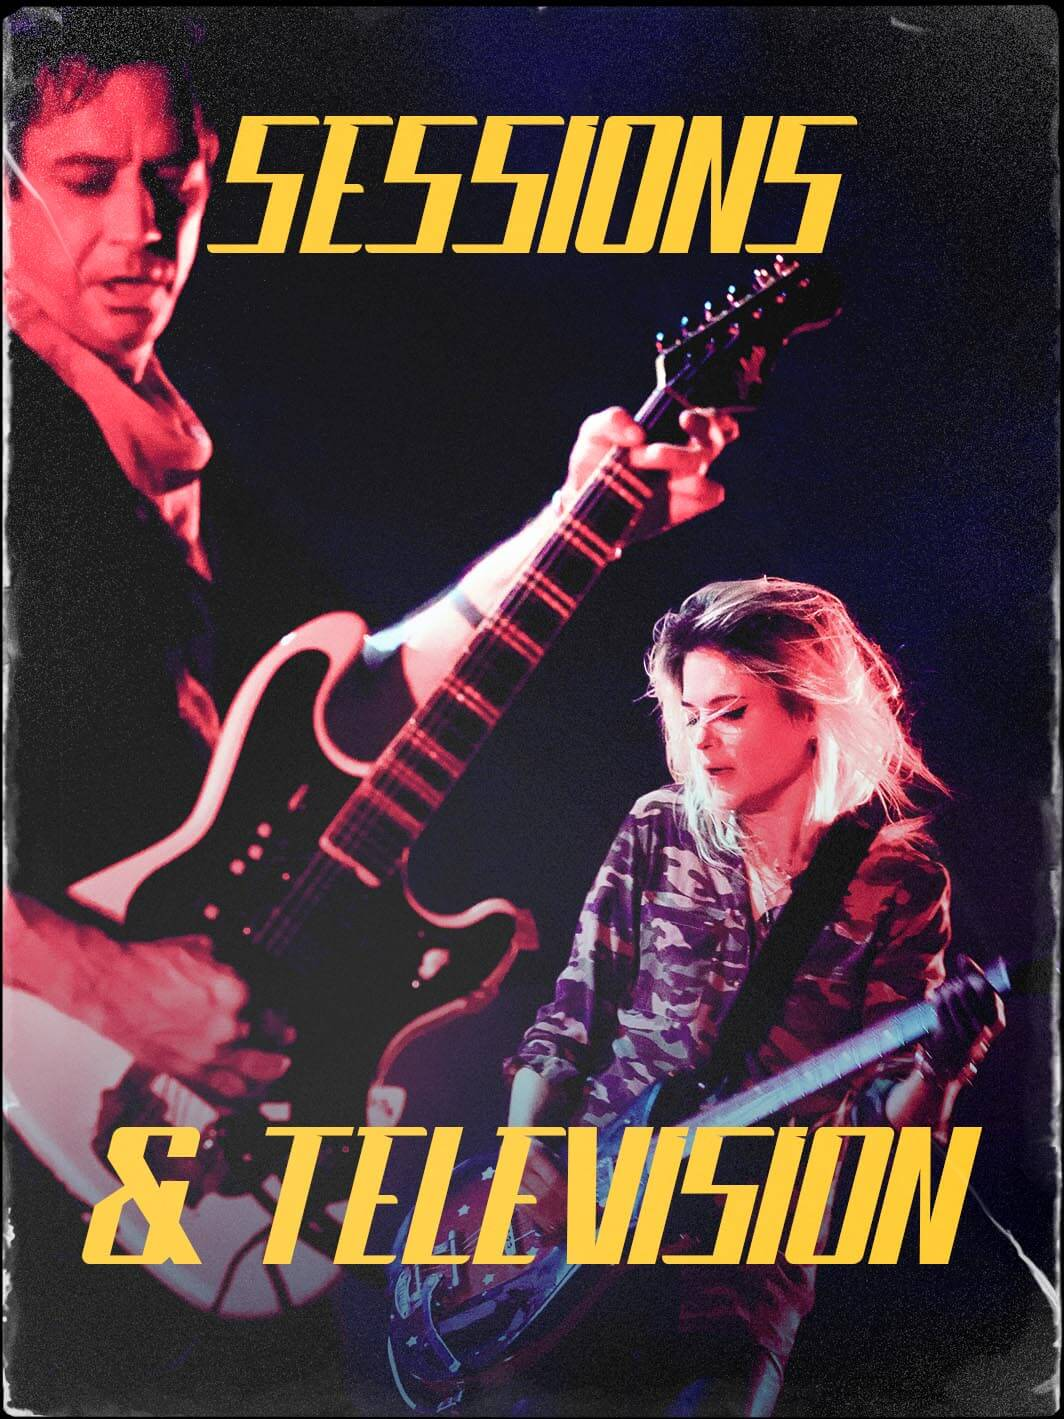 Sessions & Television